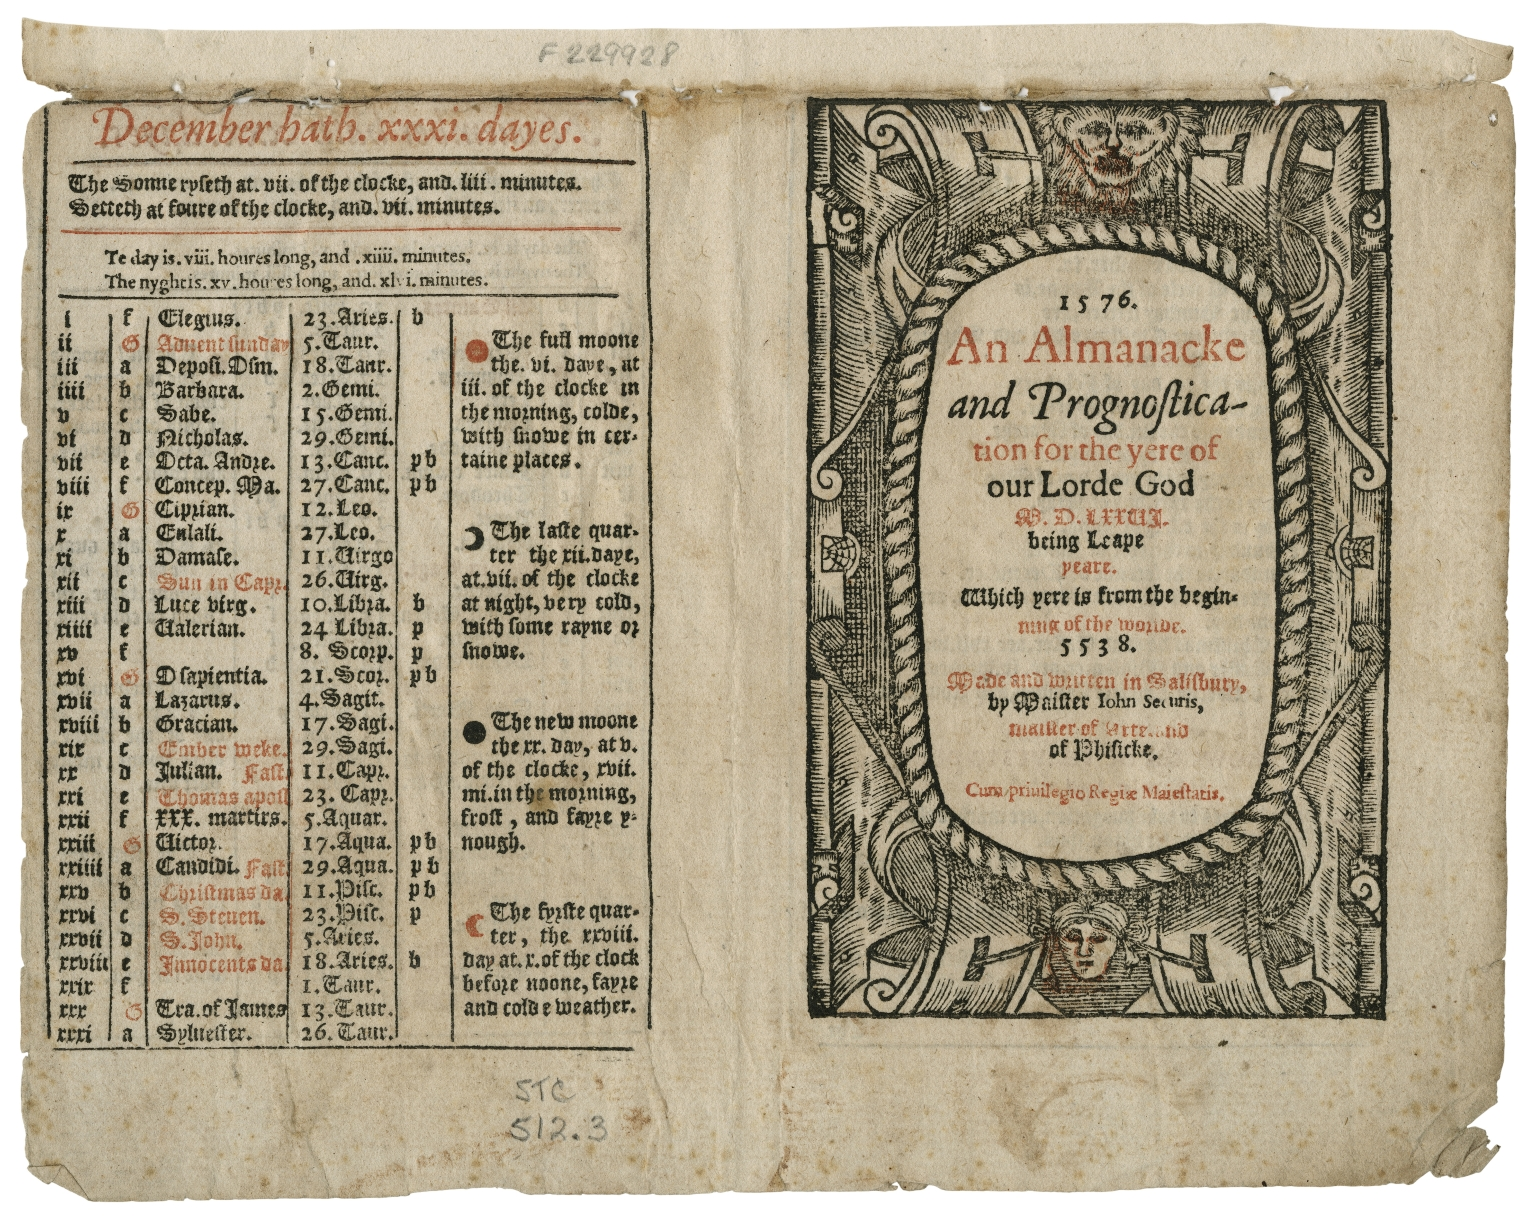 1576. An almanacke and prognostication for the yere of our Lorde God M.D.LXXVI. being leape yeare. : Which yere is from the beginning of the worlde. 5538. Made and written in Salisbury, by maister Iohn Securis, maister of Arte and of Phisicke.